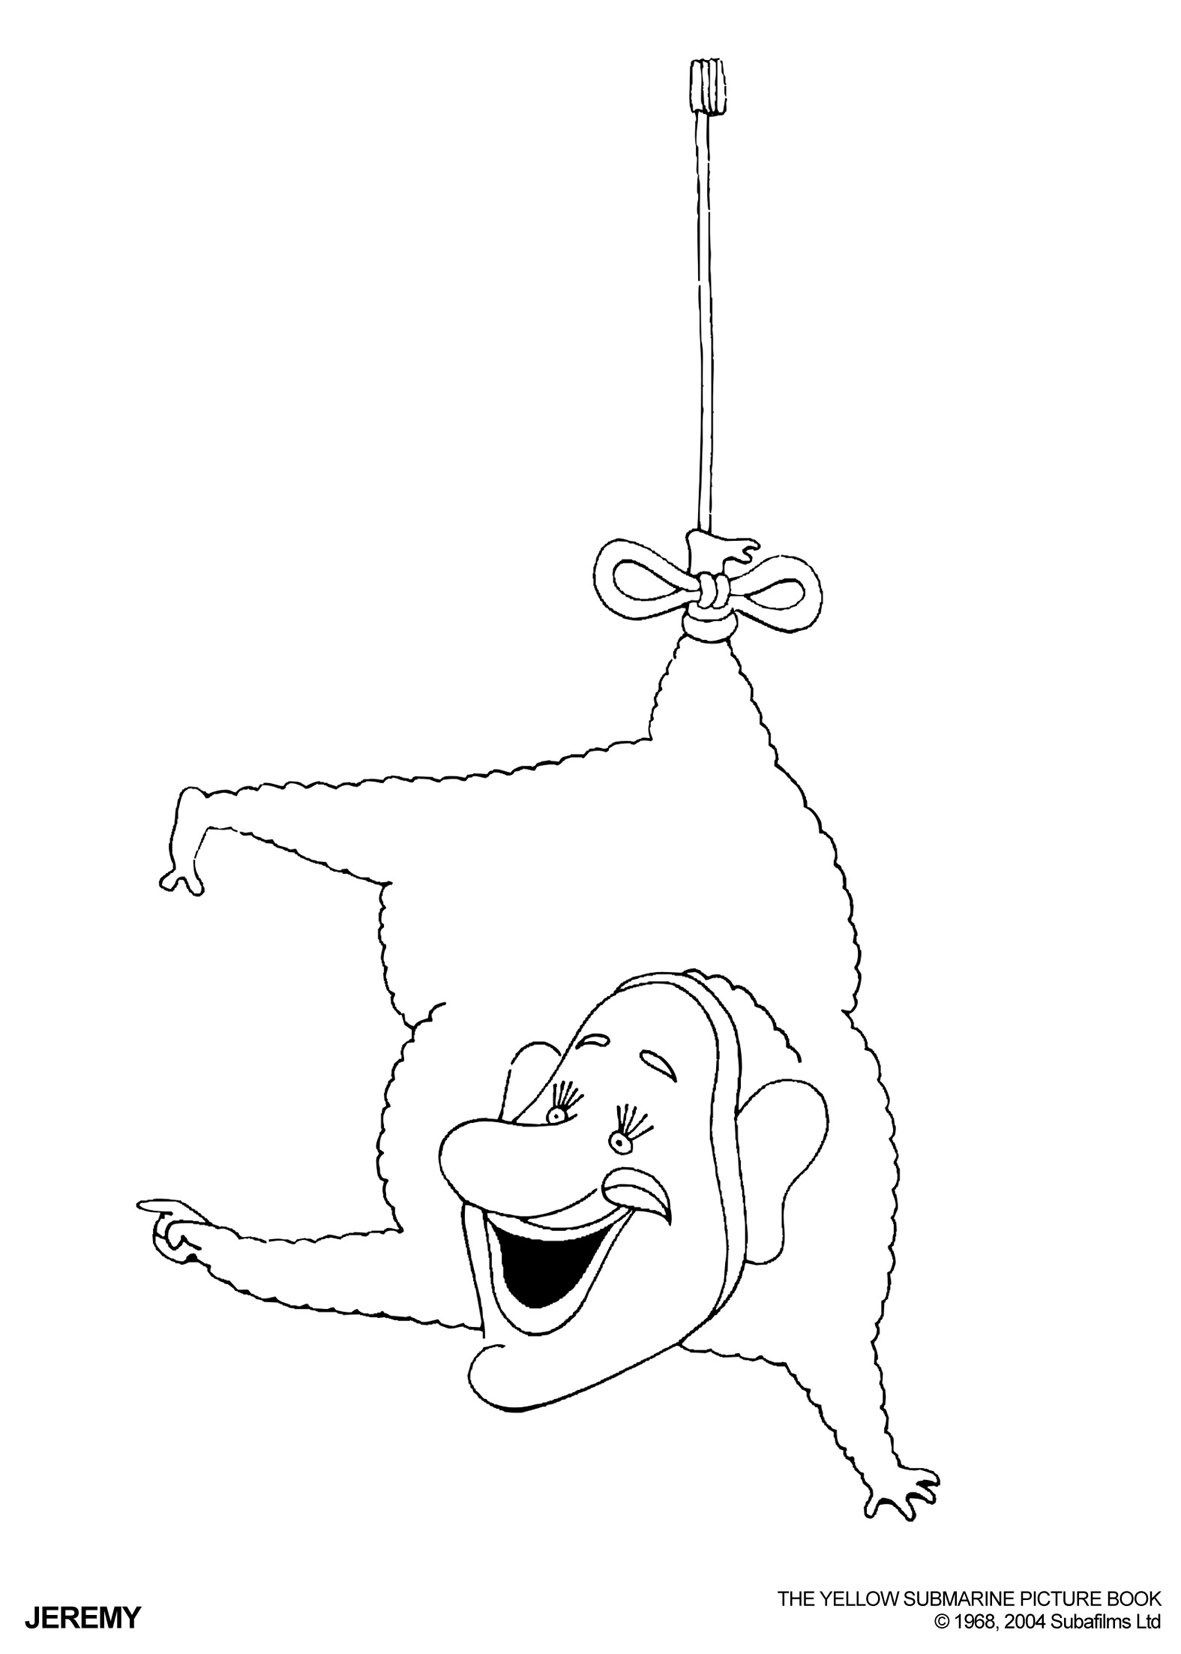 Image Result For Beatles Yellow Submarine Printable Coloring Coloring Book Pages Coloring Books Coloring Pages